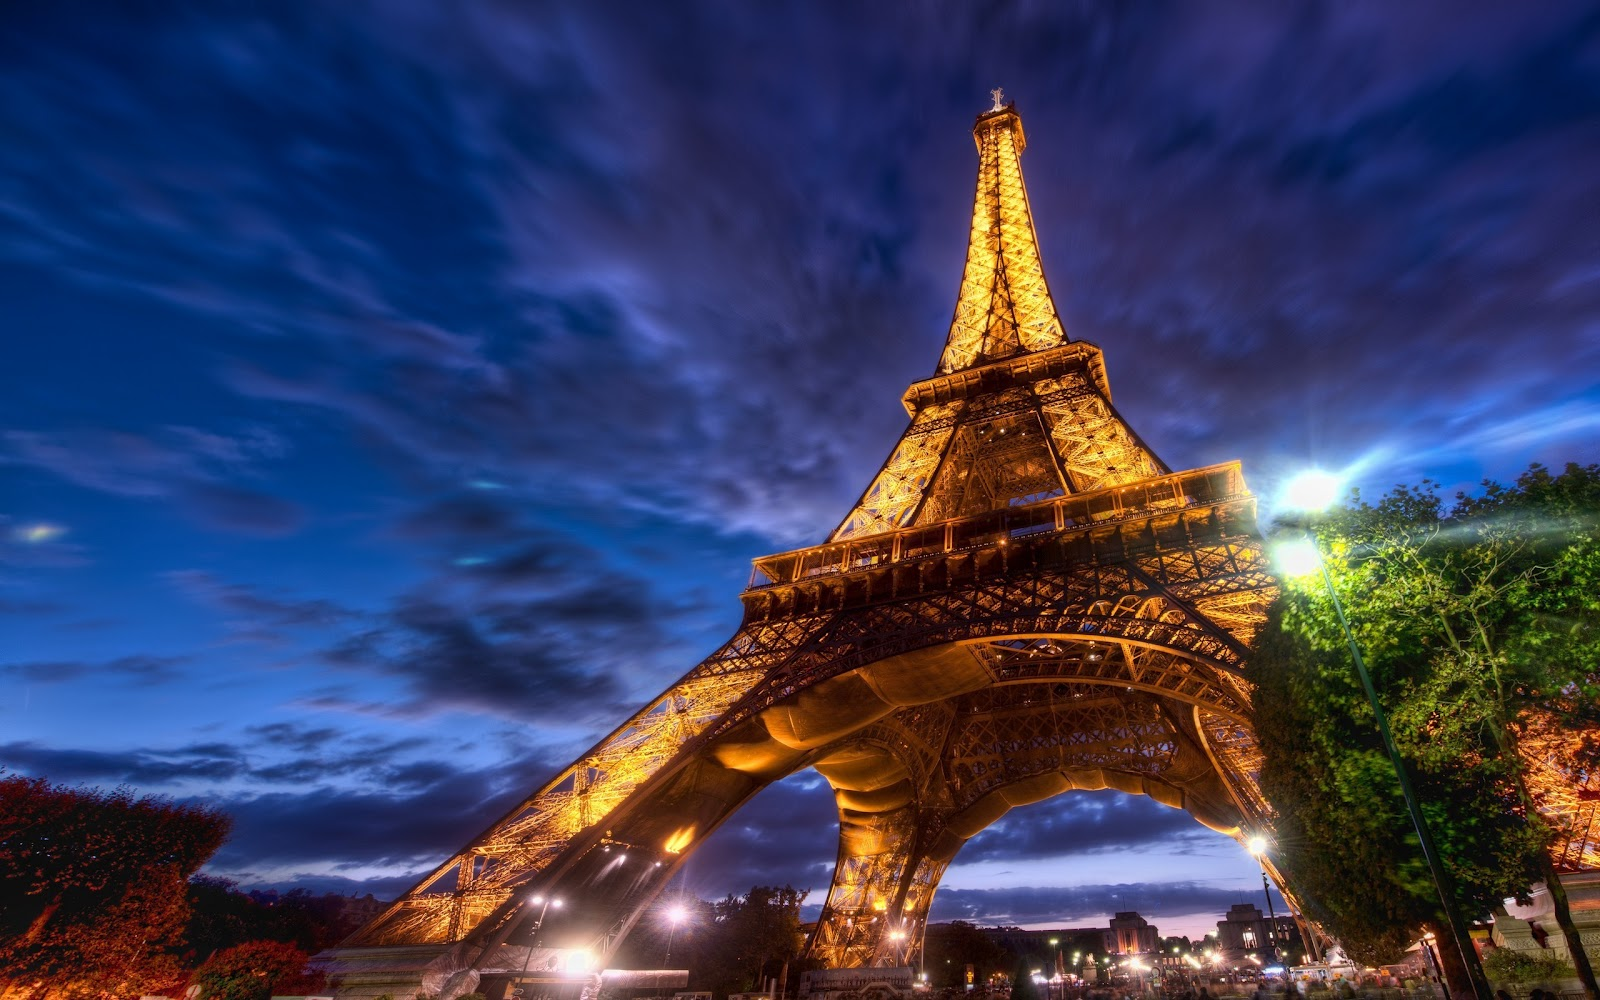 paris hd wallpapers beautiful paris hd wallpapers beautiful paris hd Wallpaper